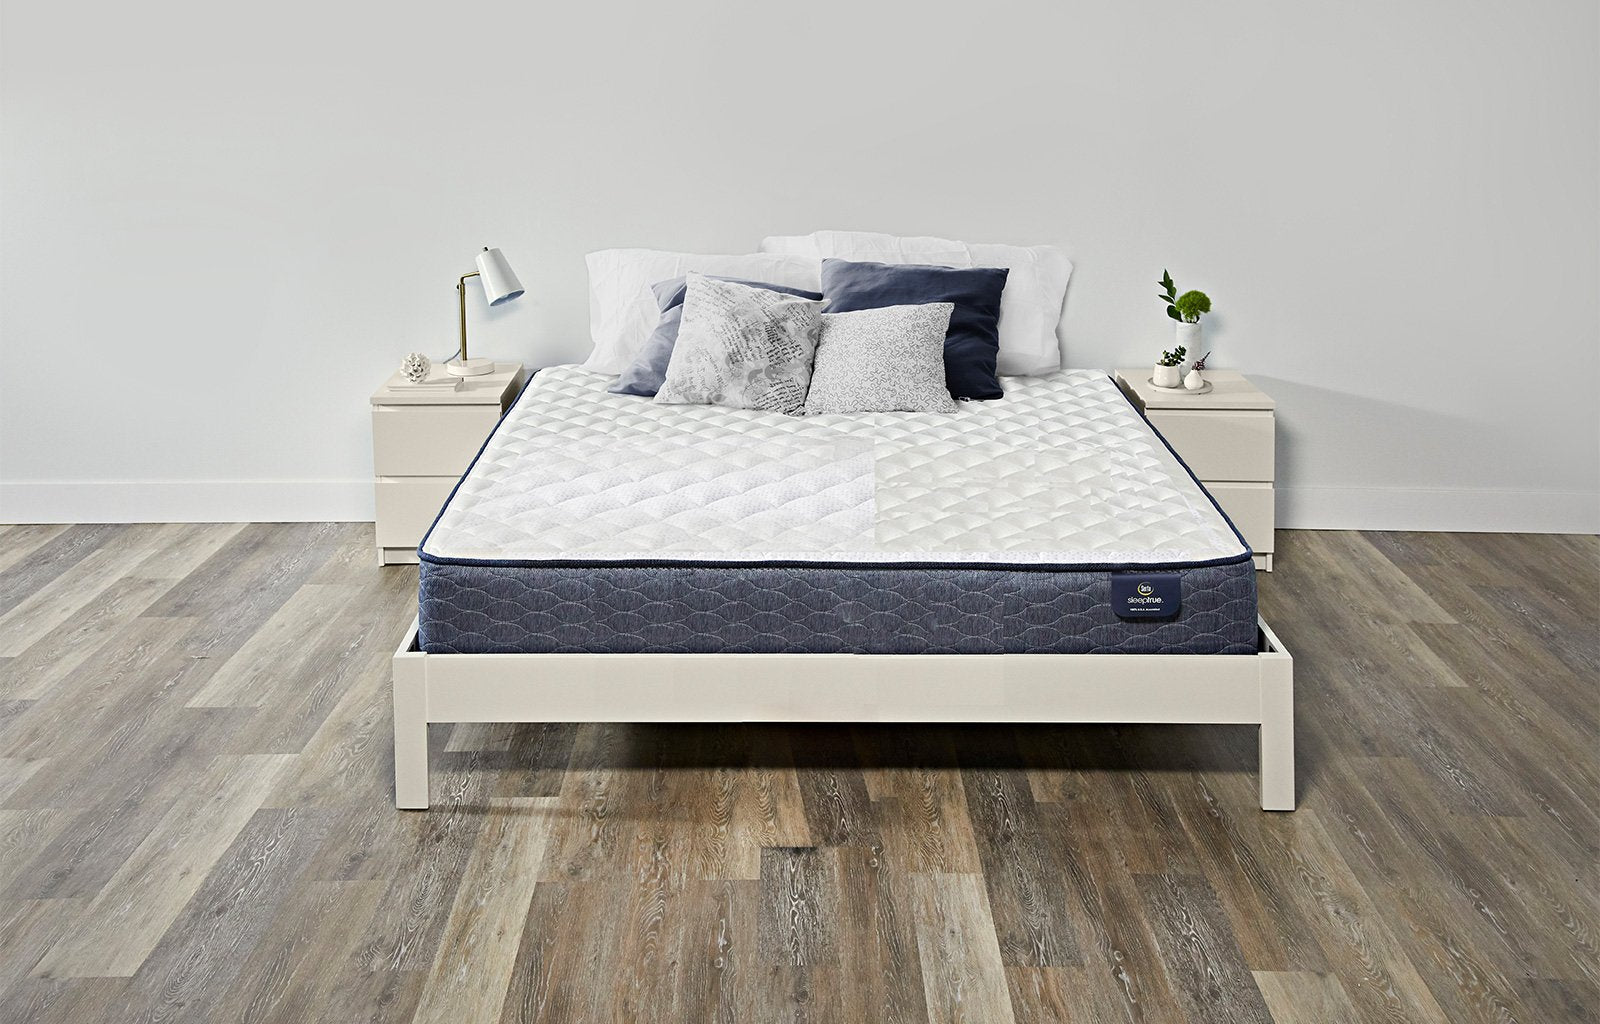 Serta Boyce Euro-Top Mattress